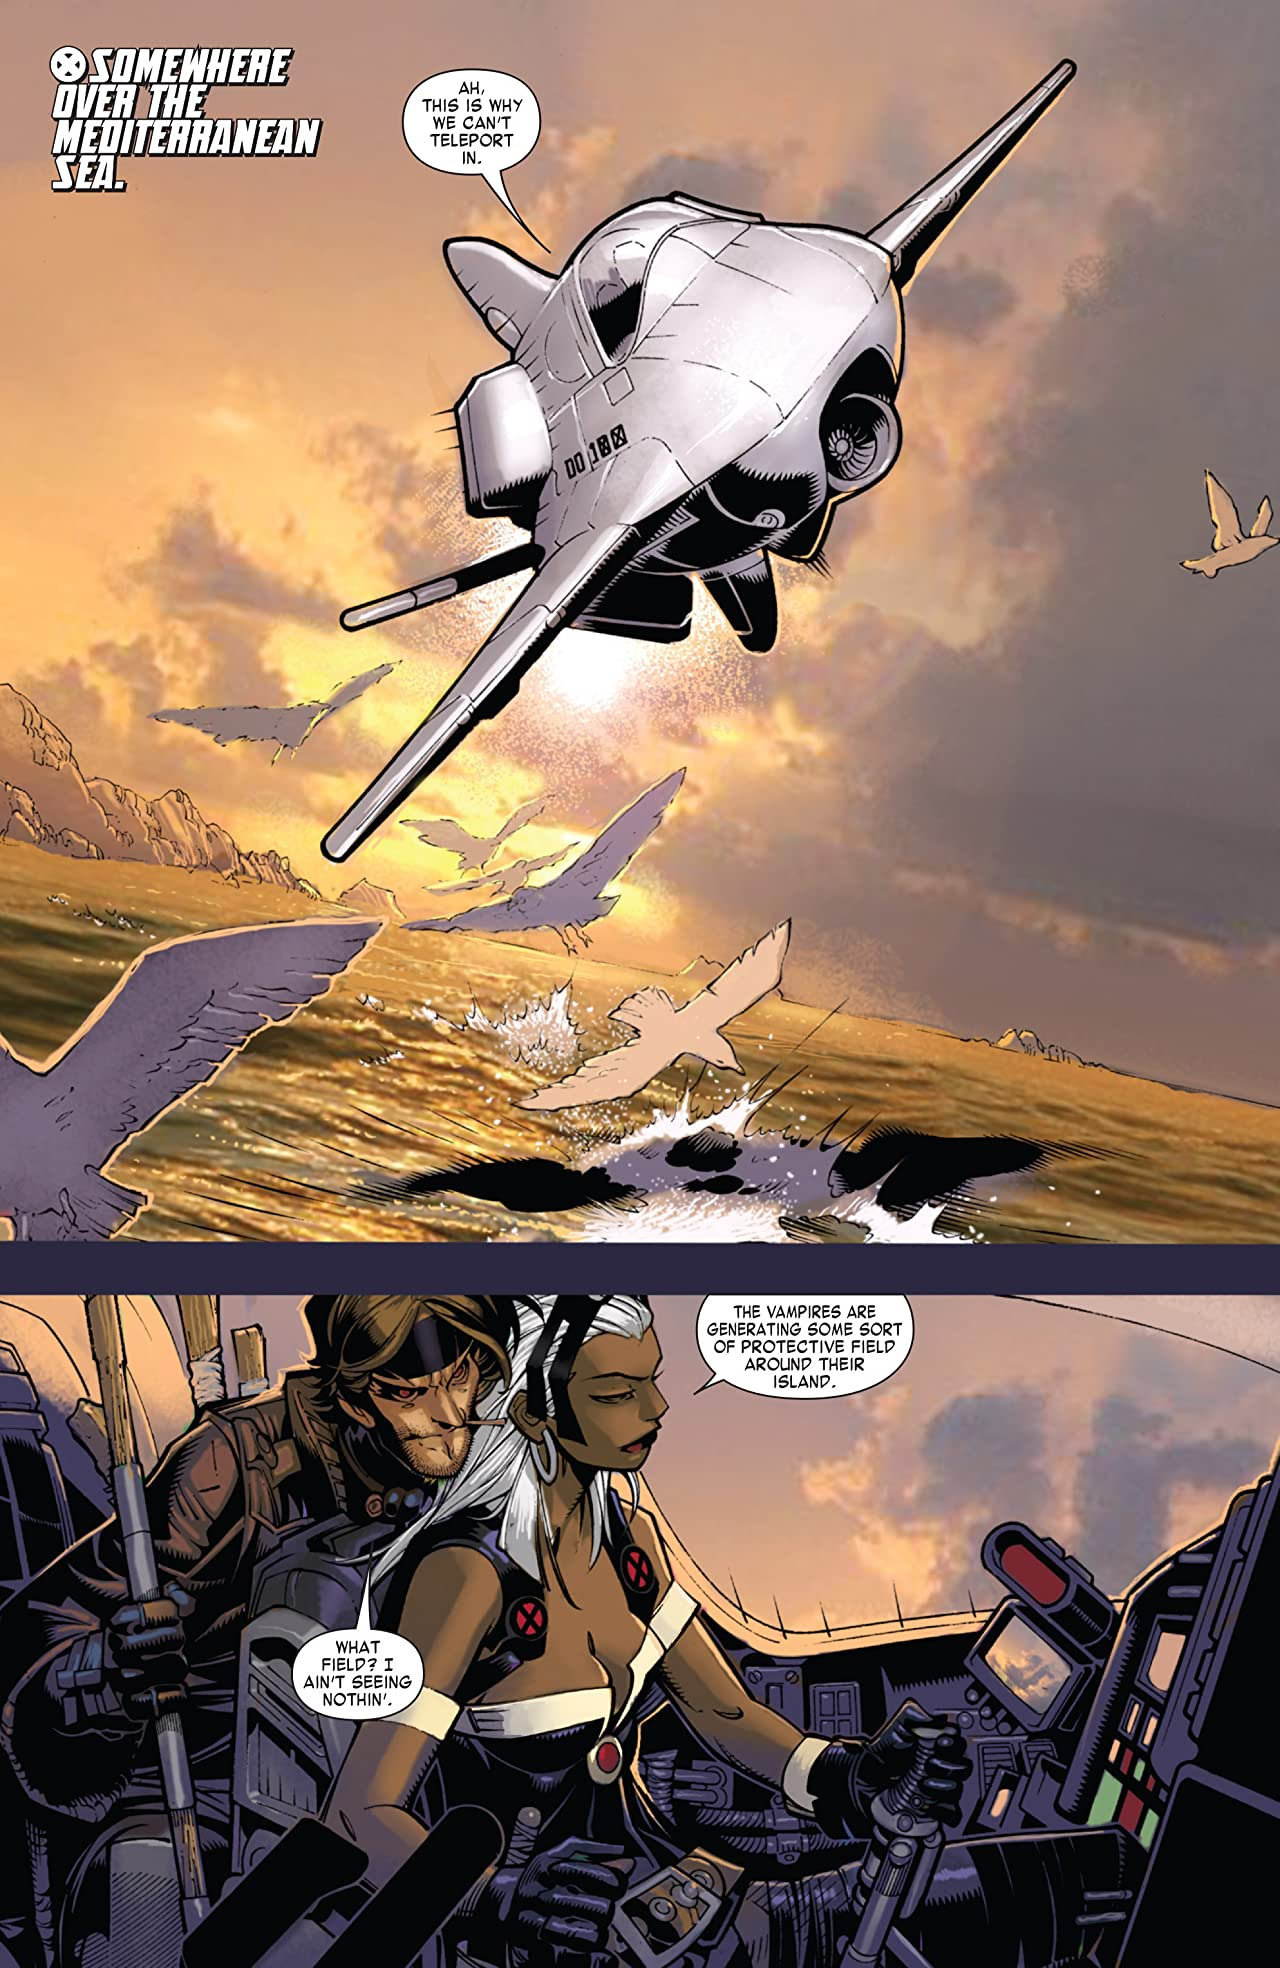 X-Men: Curse of the Mutants - Storm & Gambit (2010) #1